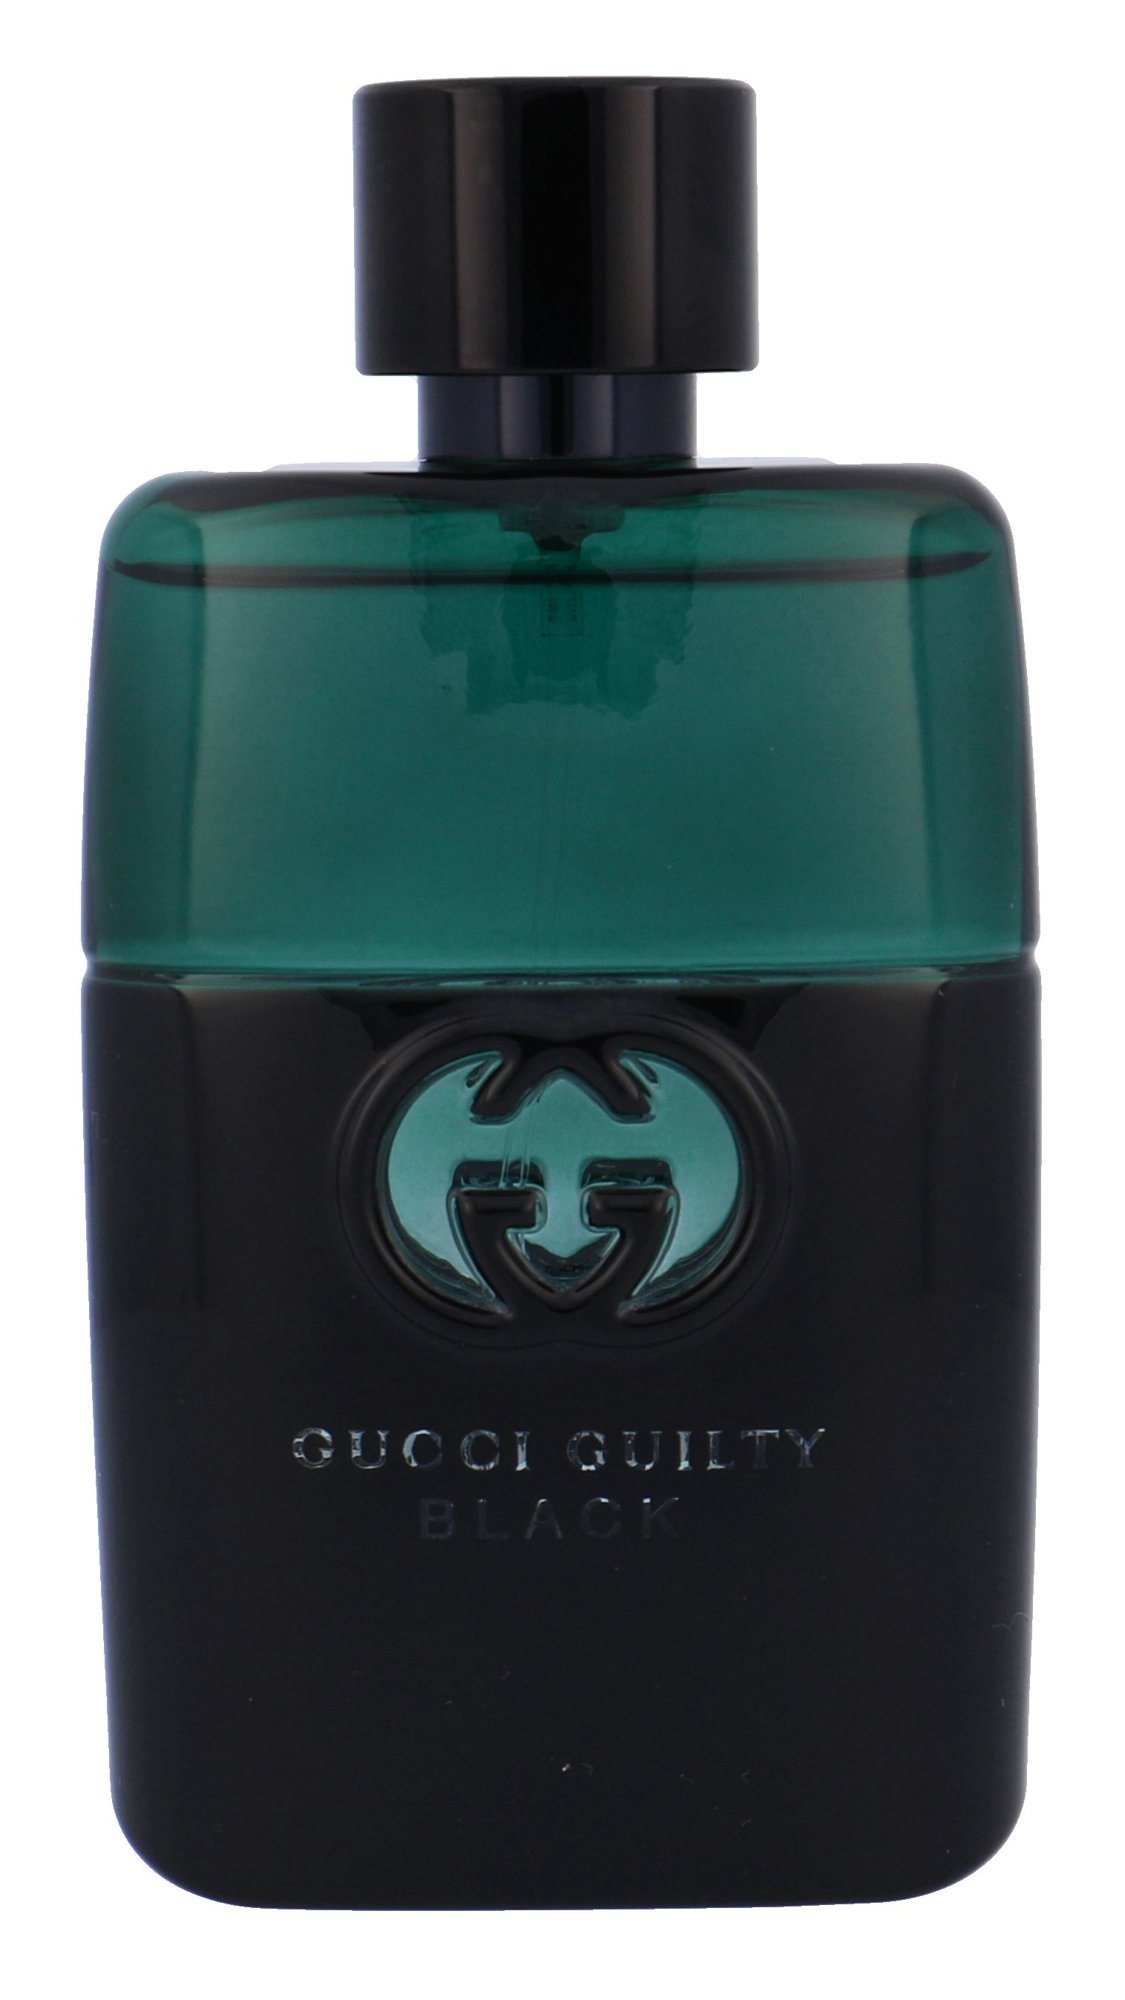 Gucci Gucci Guilty Black Pour Homme EDT 50ml